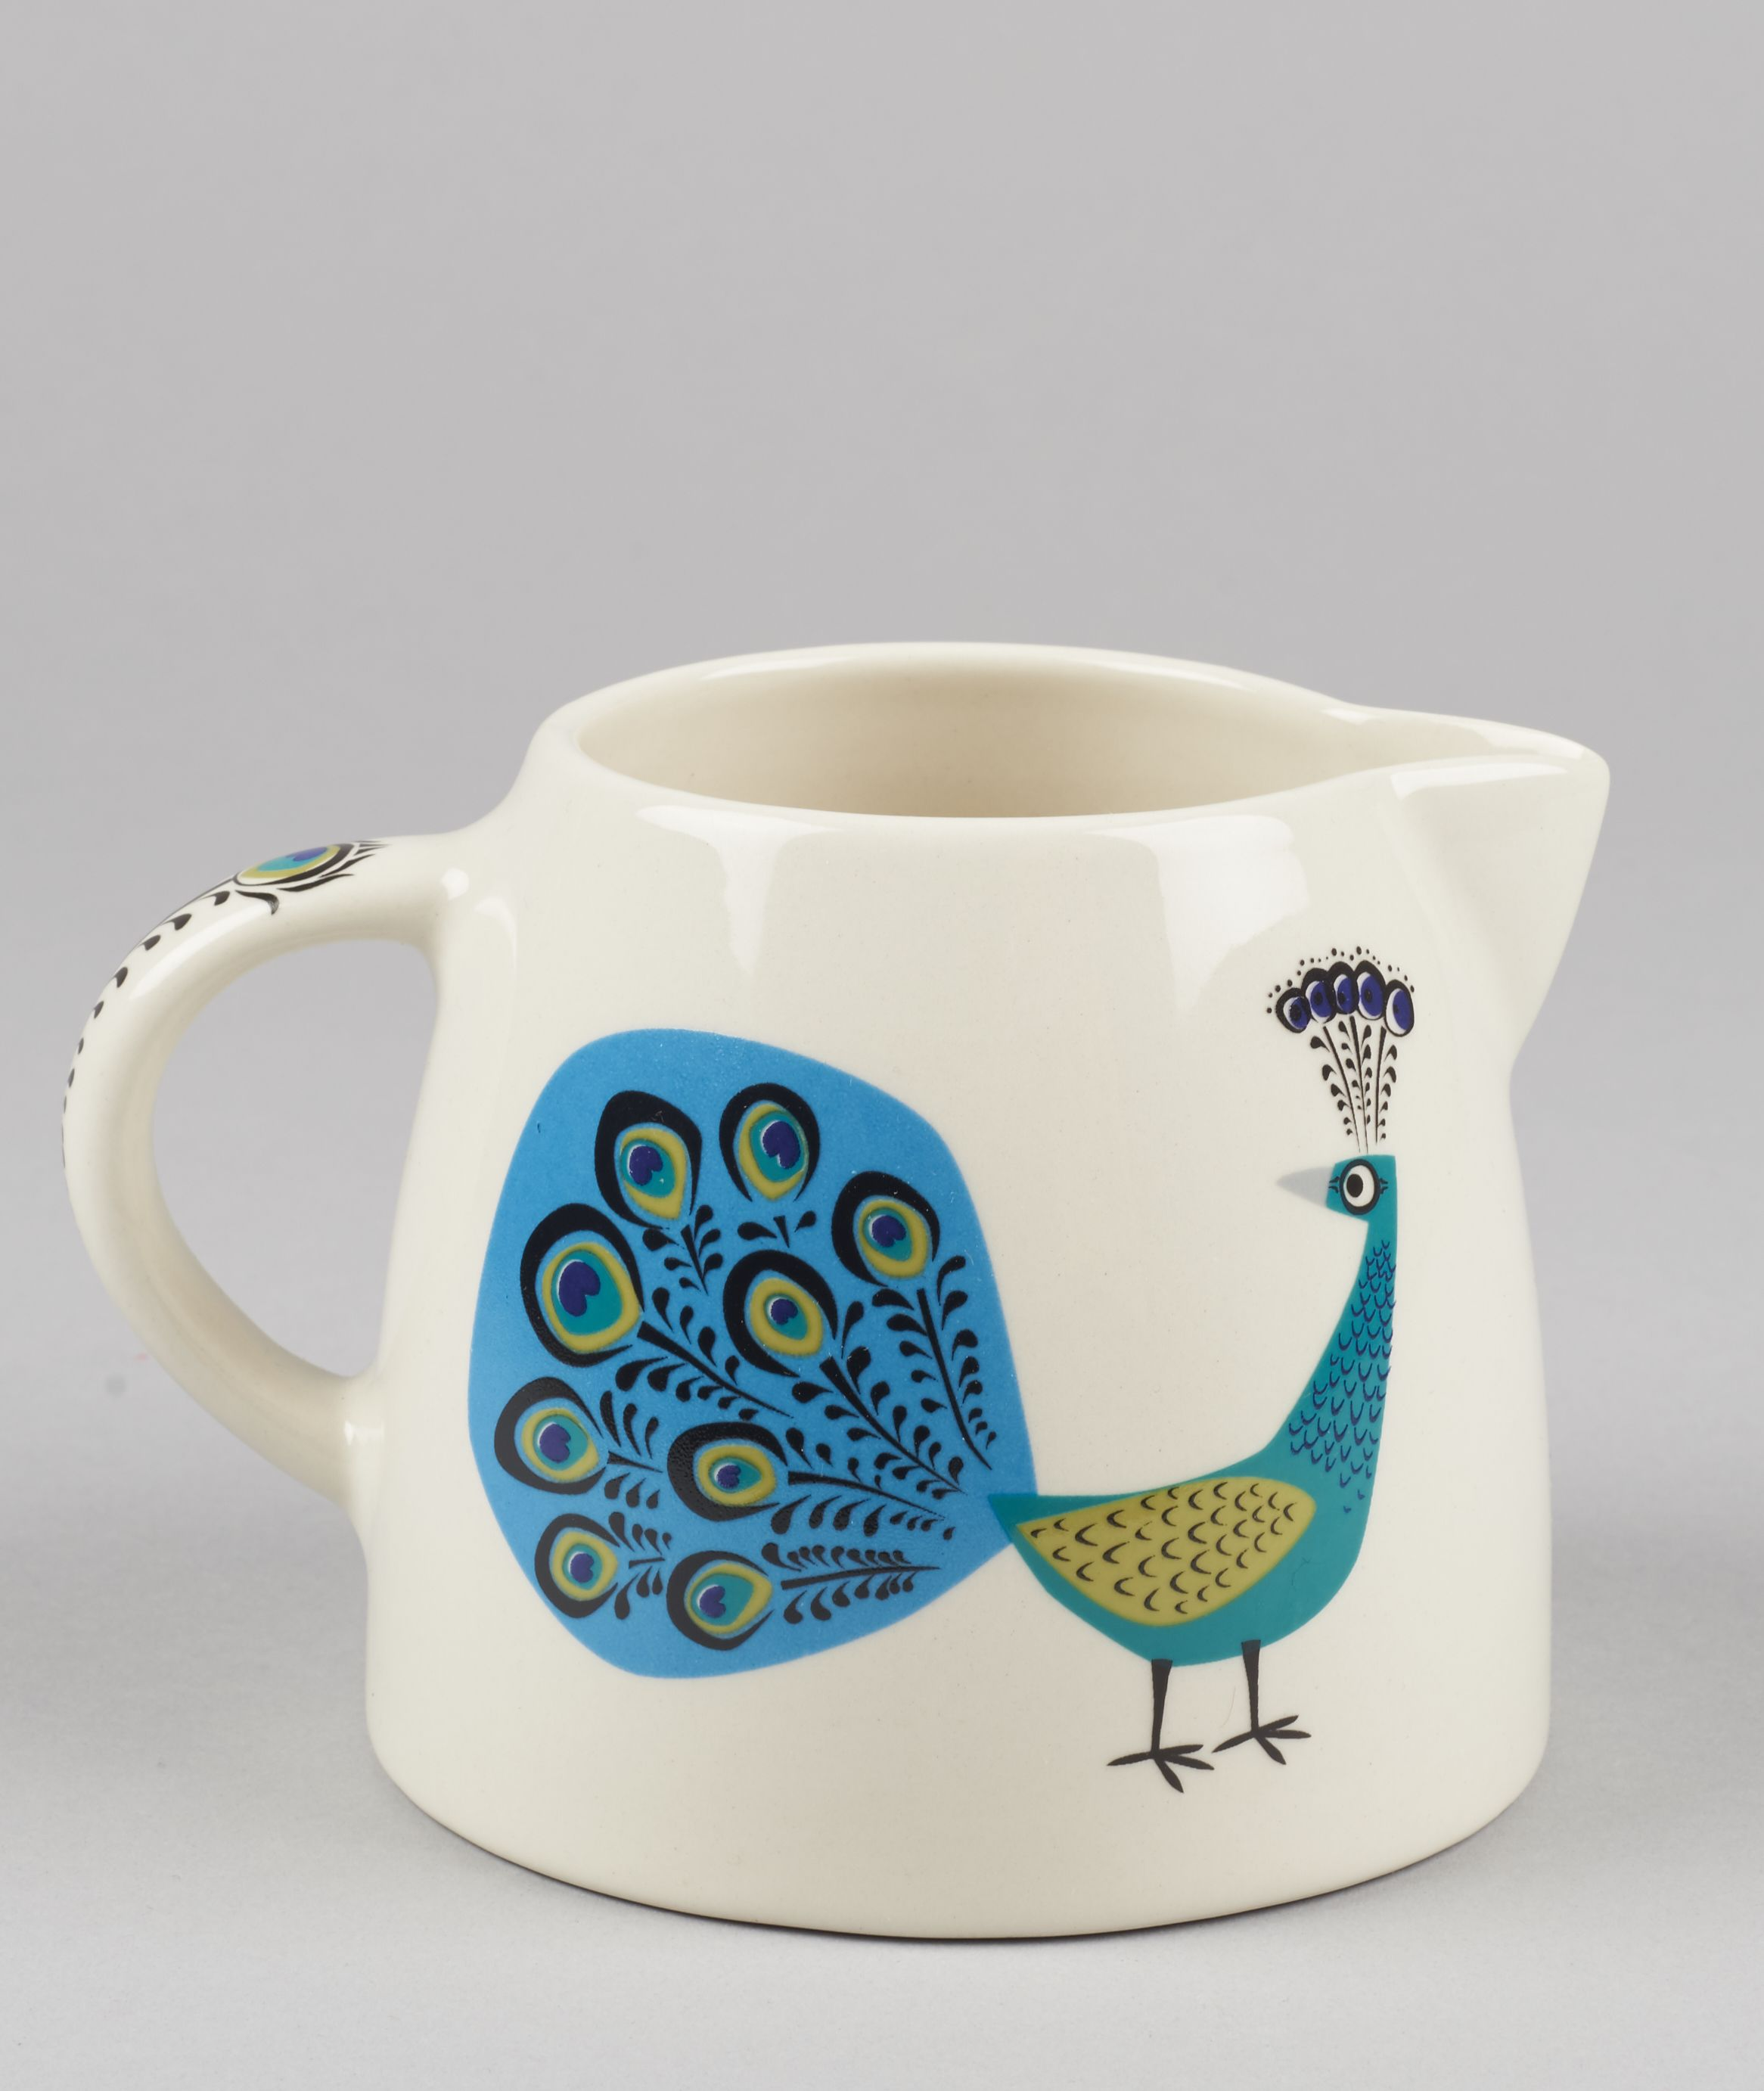 Hannah Turner Peacock Creamer Jug: The Hannah Turner peacock range is both elegant and stylish. Each product is handmade and embellished with beautifully illustrated designs of elegant strutting peacocks. This classically designed creamer jug has so many handy uses, a great practical addition for any cook or kitchen.  Hannah Turner started her business in 1991 after a sell out degree-show. Hannah works out of a studio based in the back garden of her home in Bristol, selling her amazing…